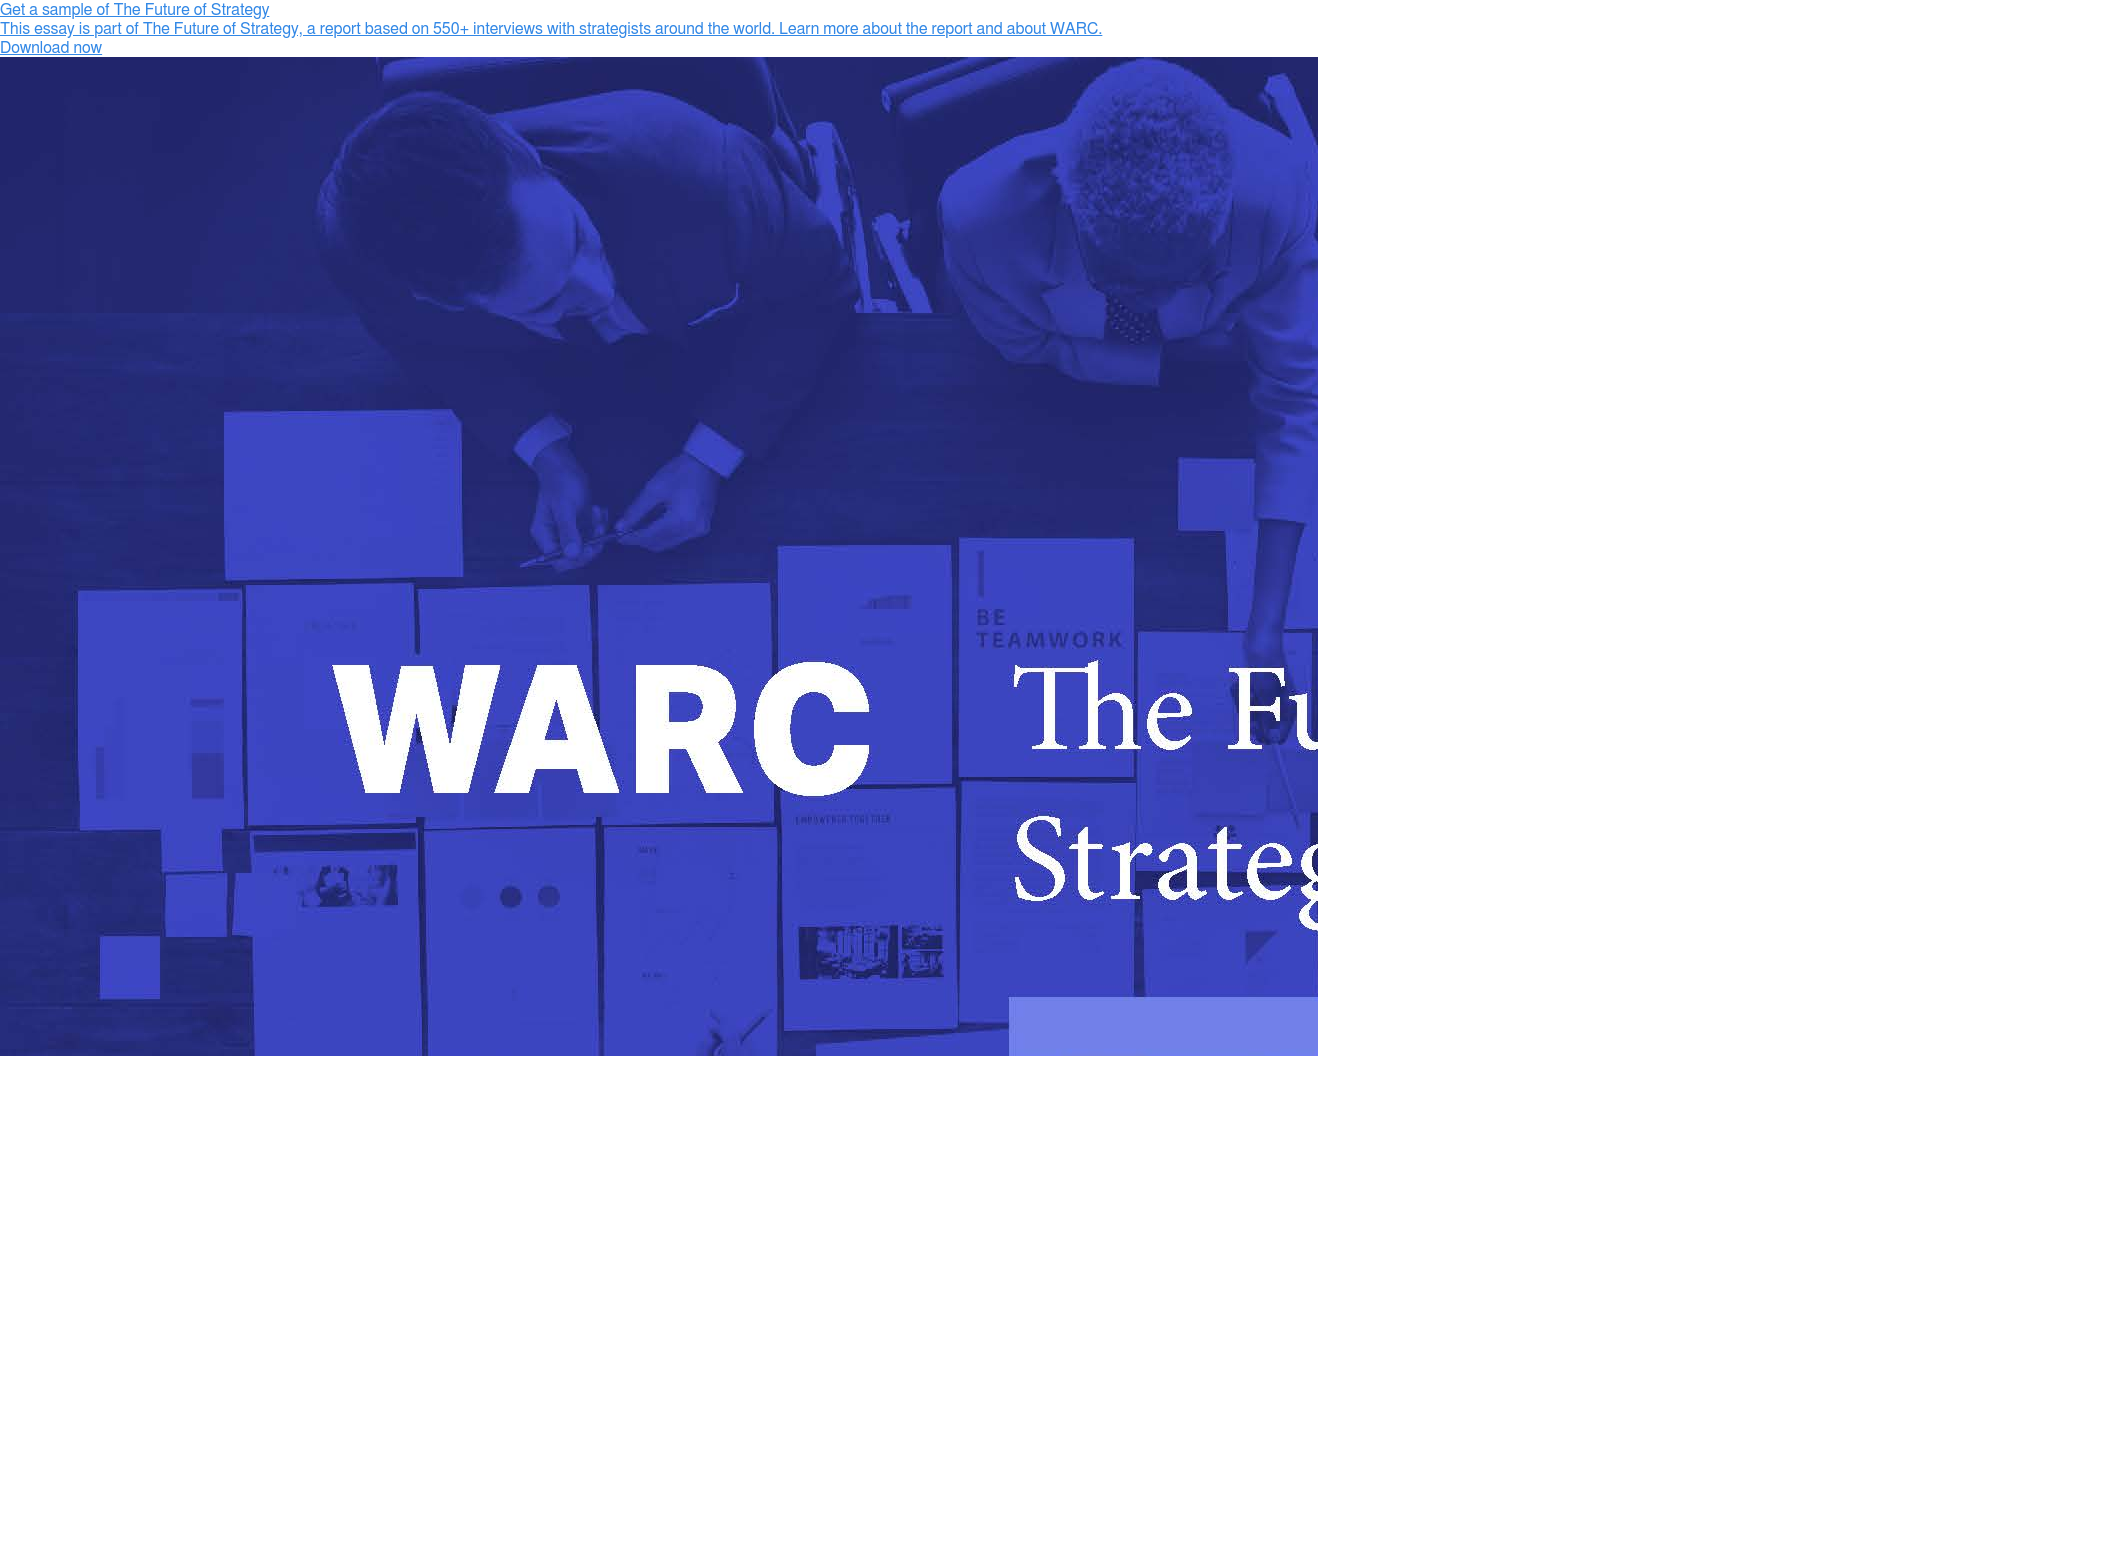 Get a sample of The Future of Strategy This essay is part of The Future of  Strategy, a report based on 550+ interviews with strategists around the world.  Learn more about the report and about WARC. Download now